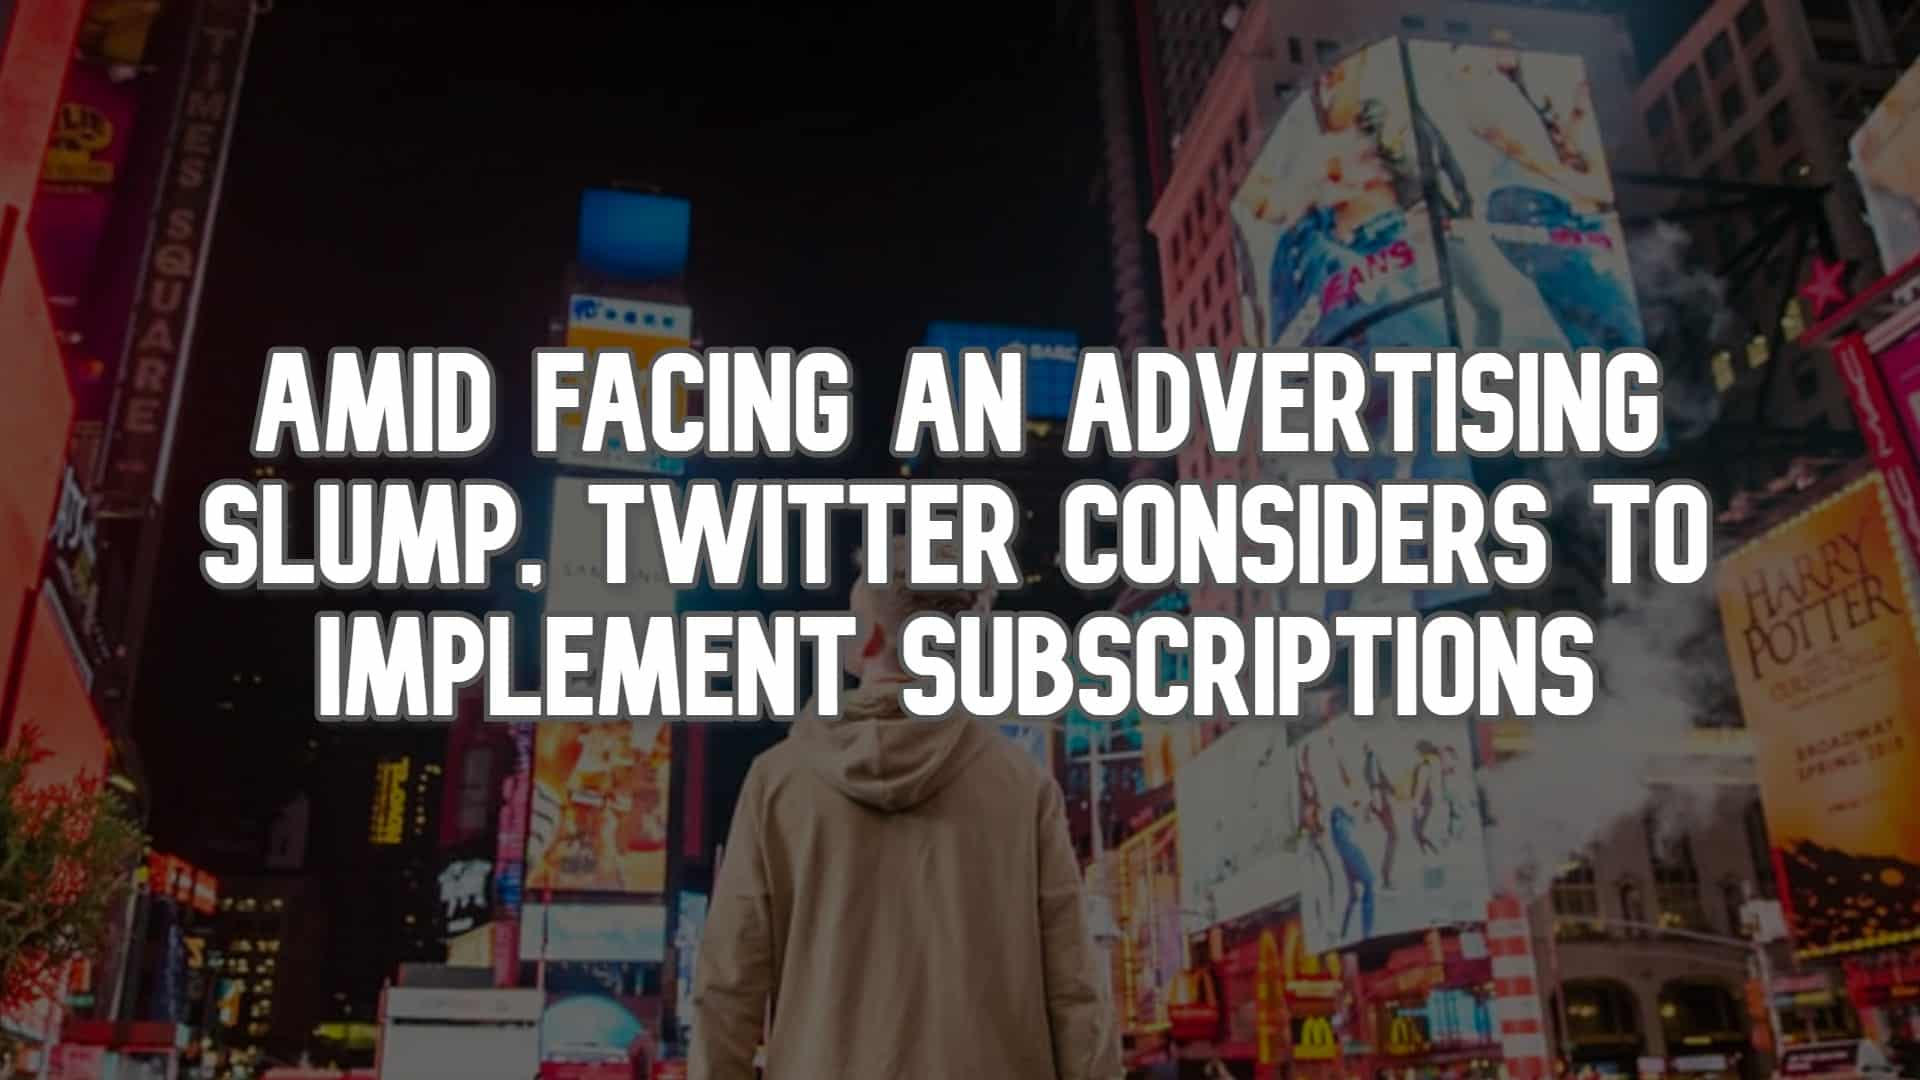 Amid Facing an Advertising Slump, Twitter Considers to Implement Subscriptions